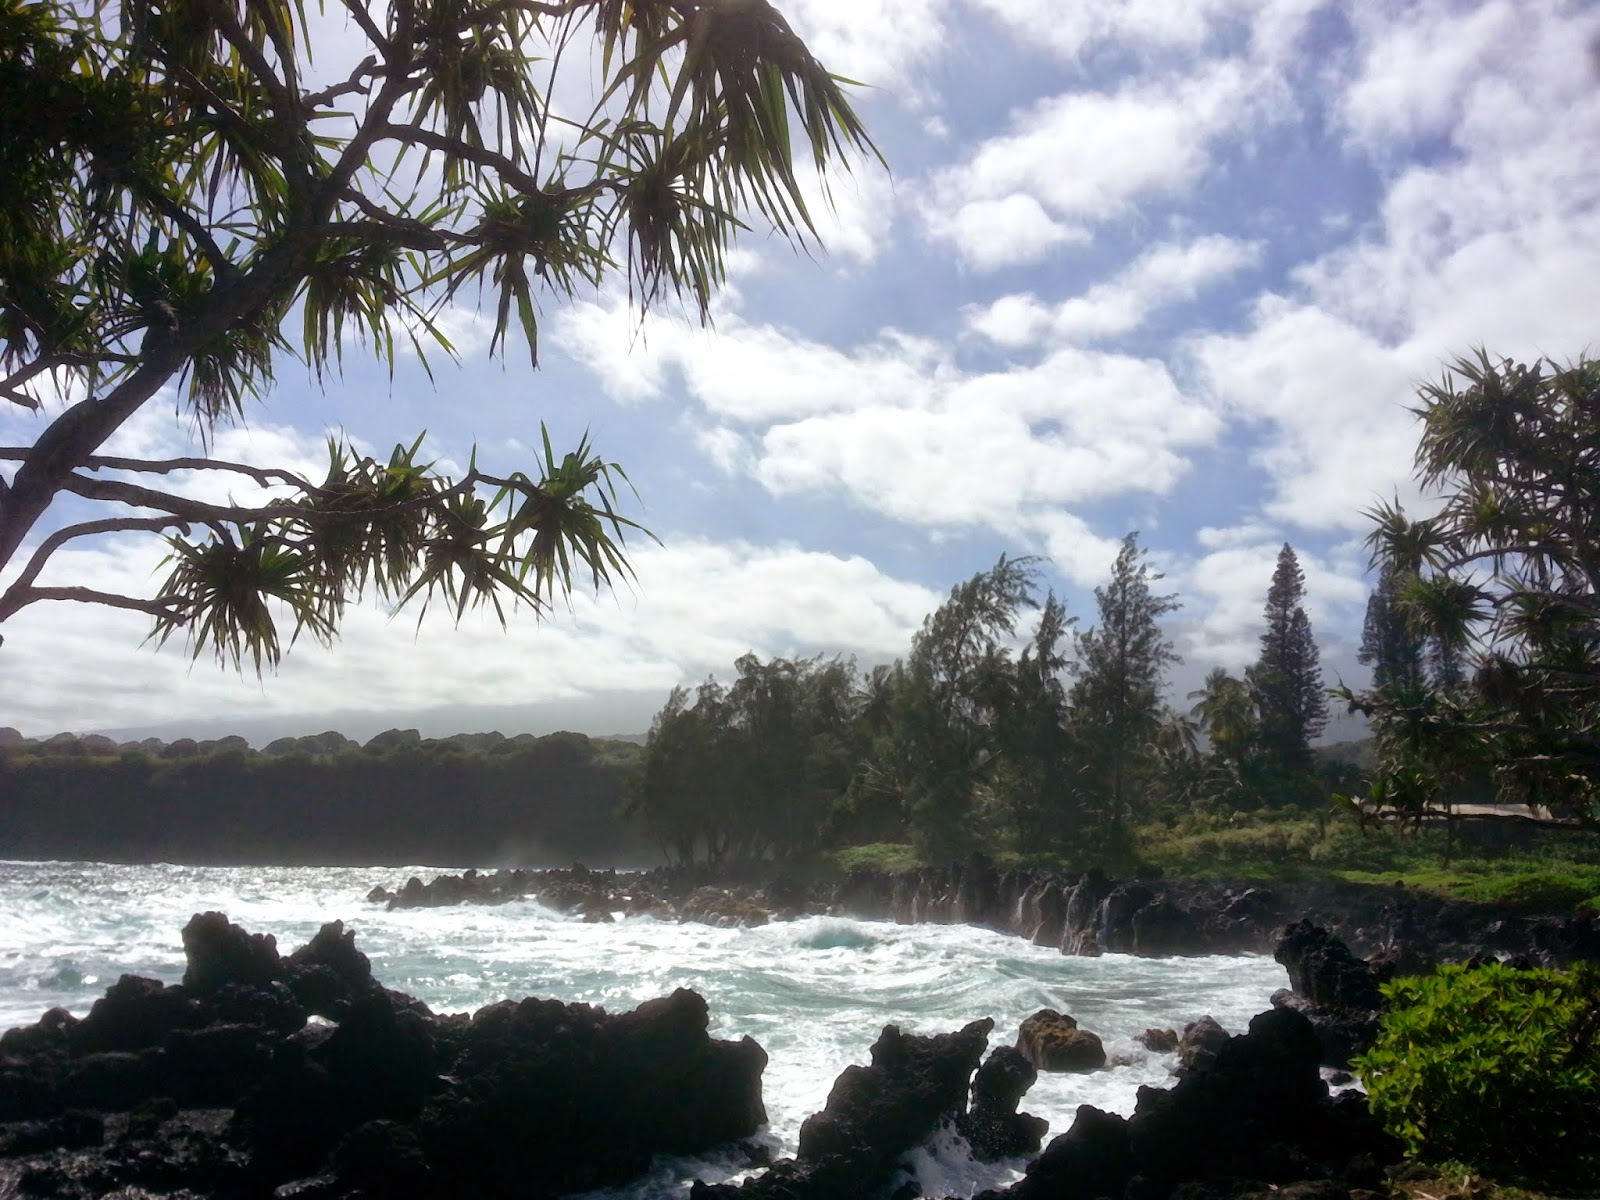 Iles de Hawaii  - Maui